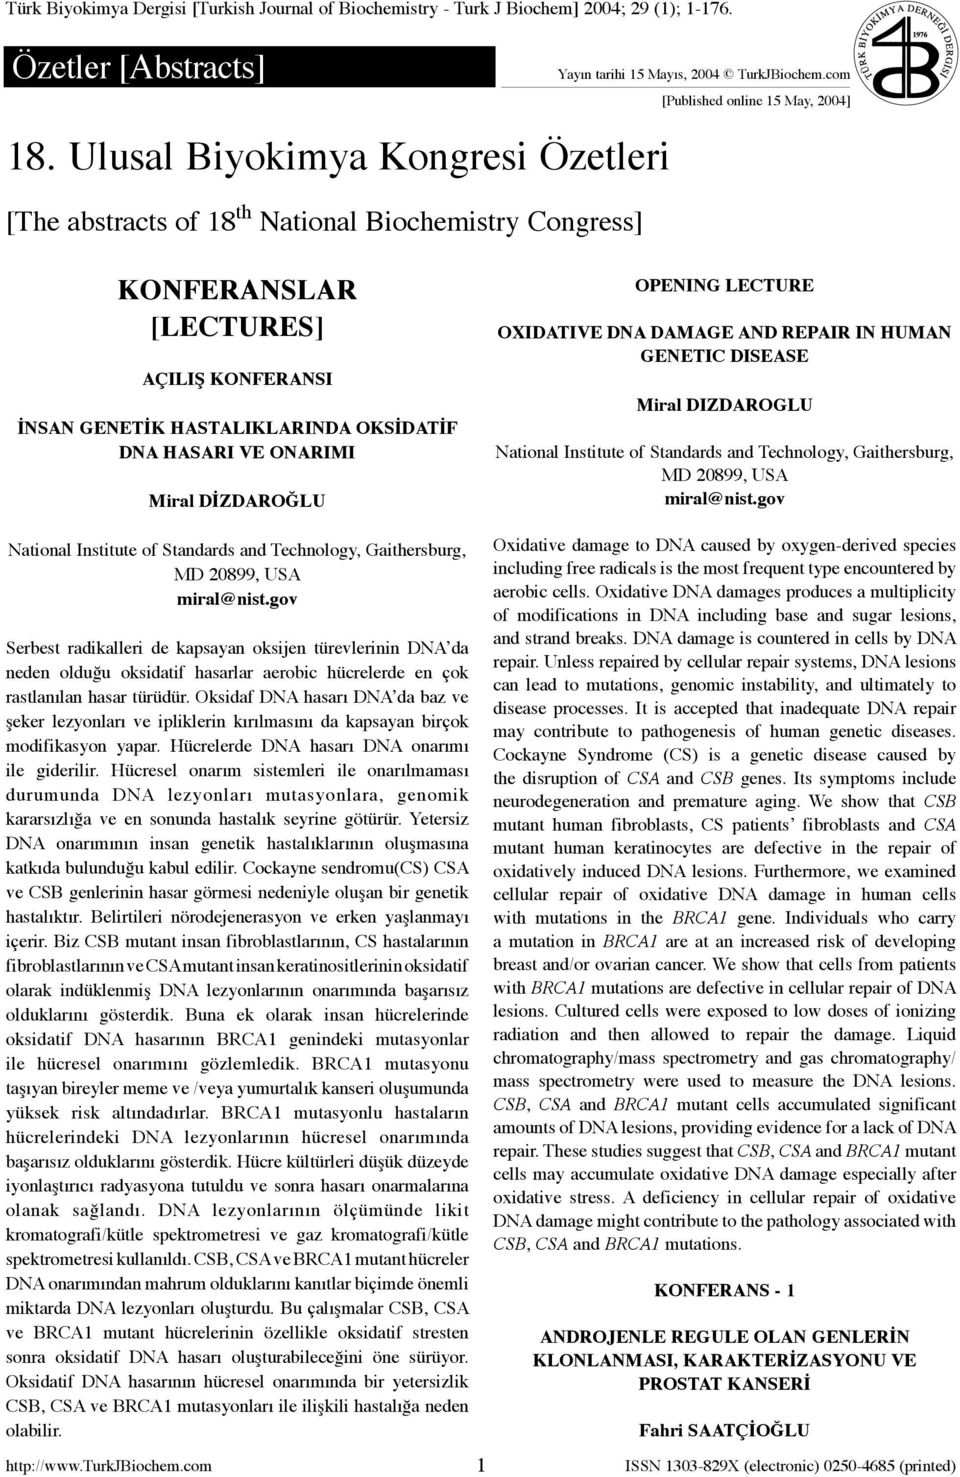 com [Published online 15 May, 2004] KONFERANSLAR [LECTURES] AÇILIŞ KONFERANSI İNSAN GENETİK HASTALIKLARINDA OKSİDATİF DNA HASARI VE ONARIMI Miral DİZDAROĞLU OPENING LECTURE OXIDATIVE DNA DAMAGE AND